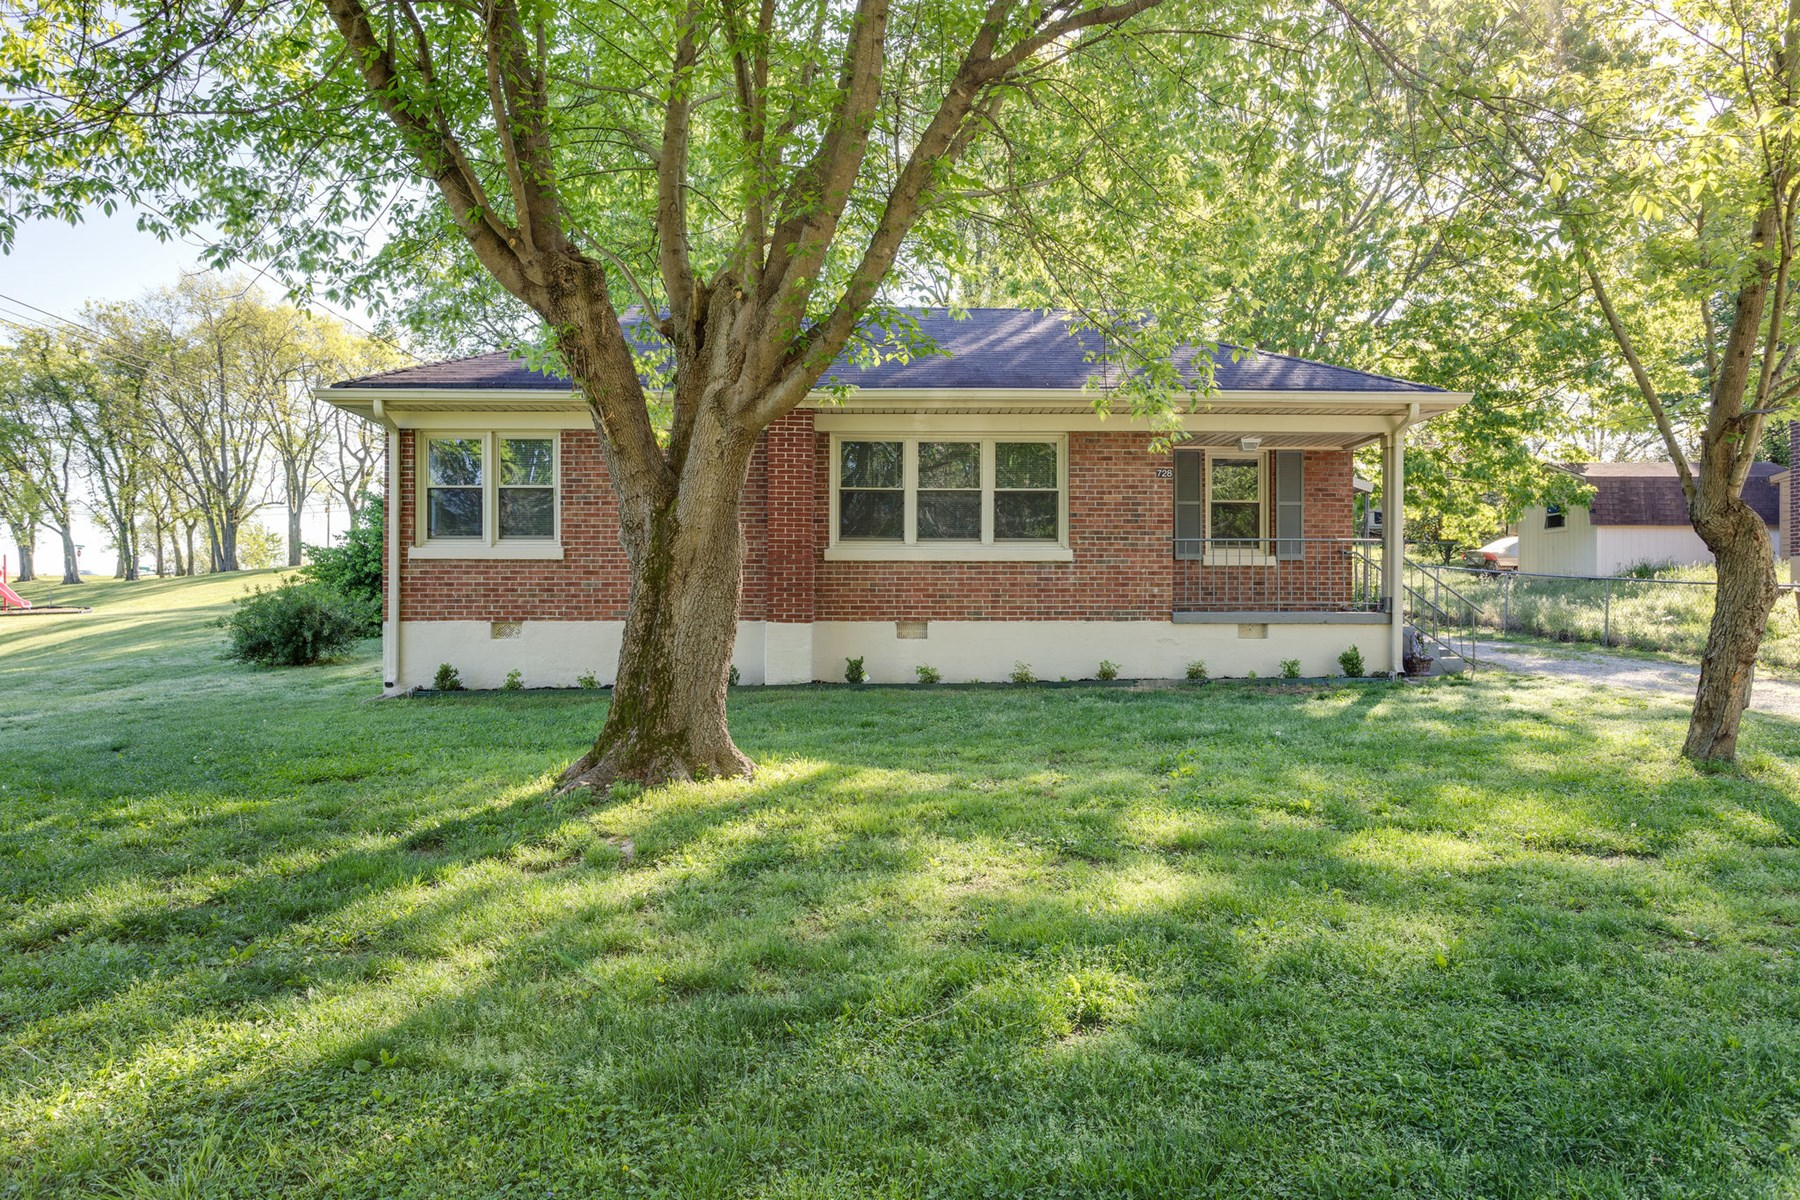 Curb appeal on this cute cottage, in Maury County Tennessee